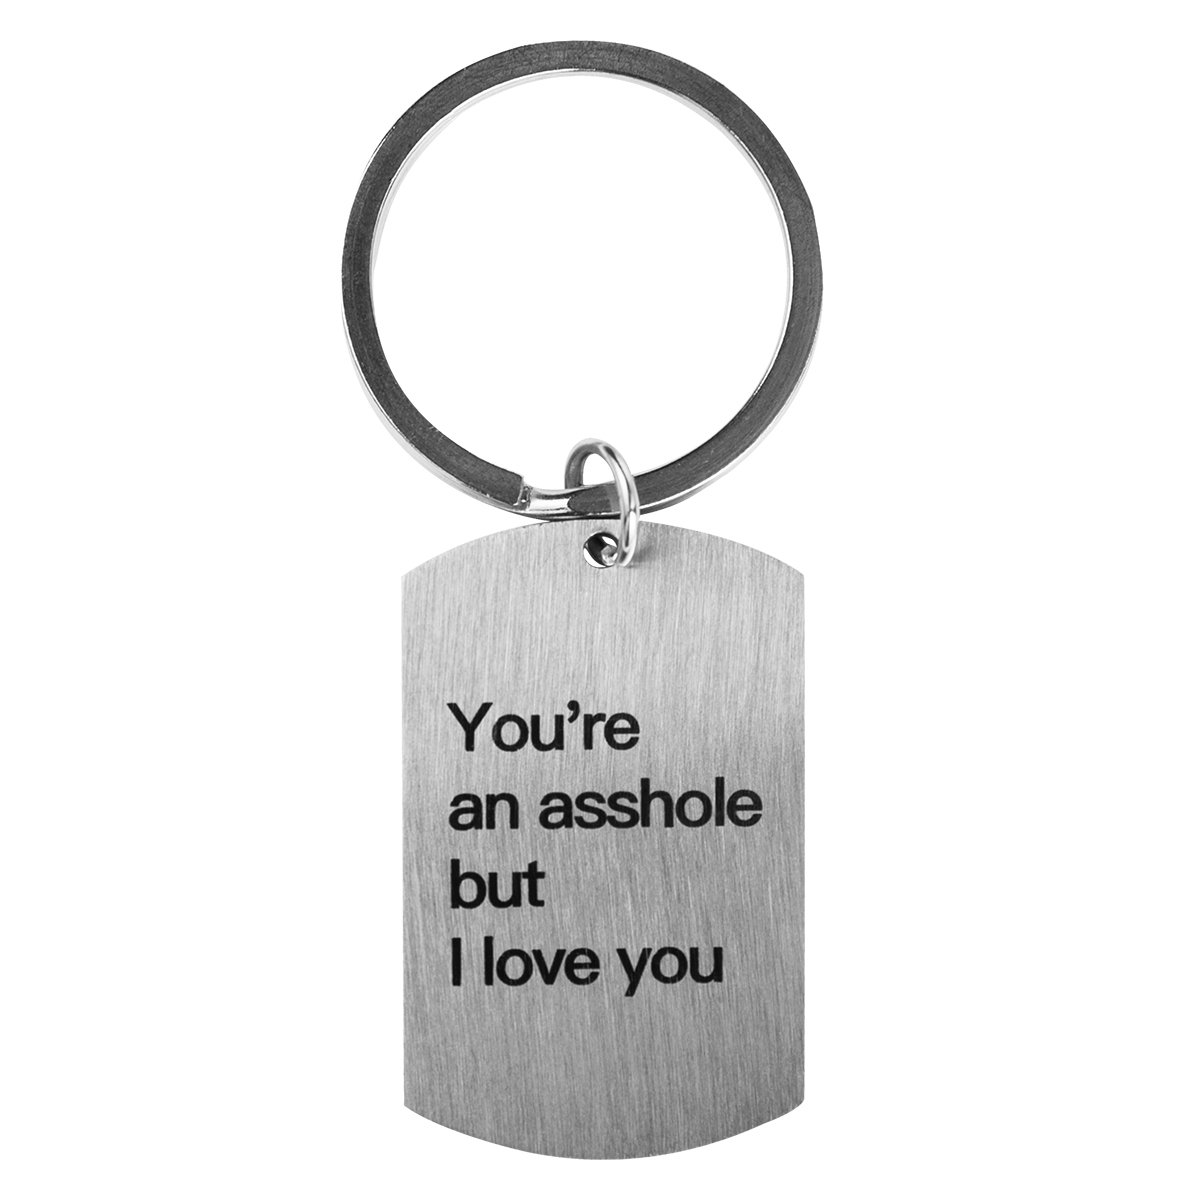 Jewelady Funny Gift for Him Keychain Stainless Steel Dog Tag Personalized Gift for Boyfriend,for Husband (You're an Asshole But I Love You)